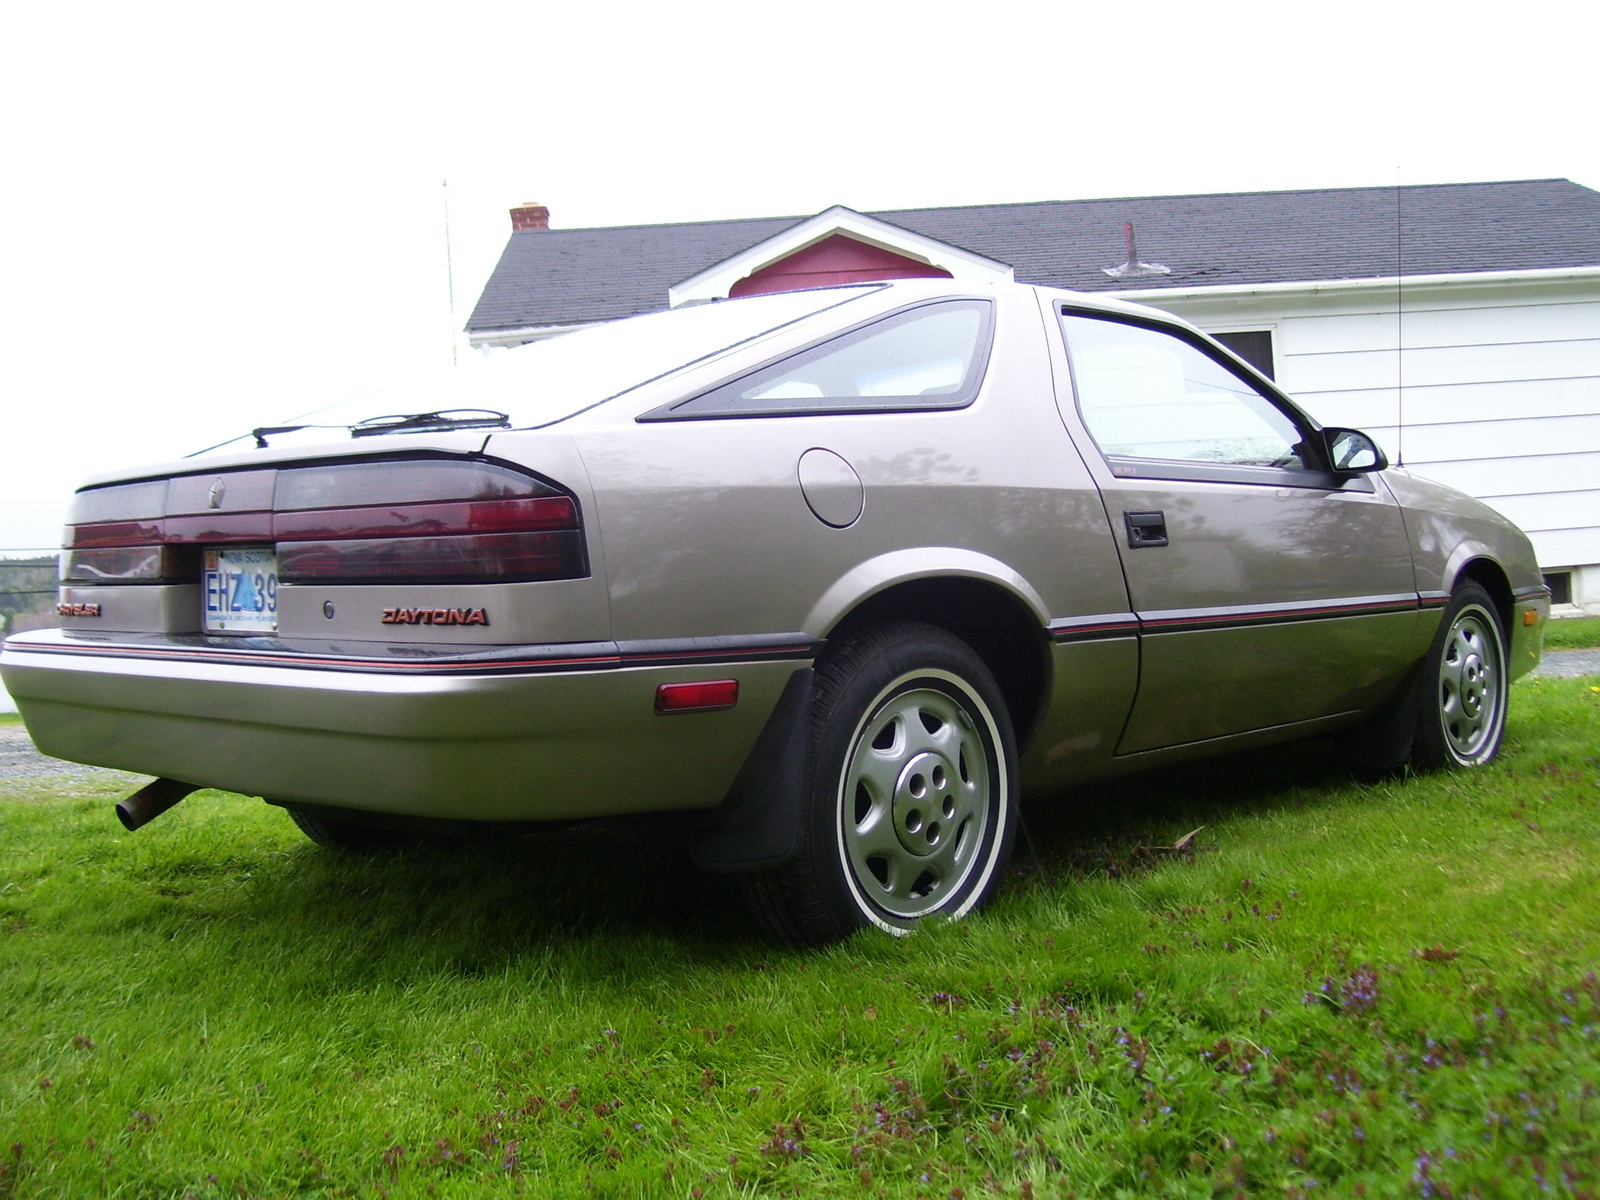 1988 Dodge Daytona - Overview - CarGurus